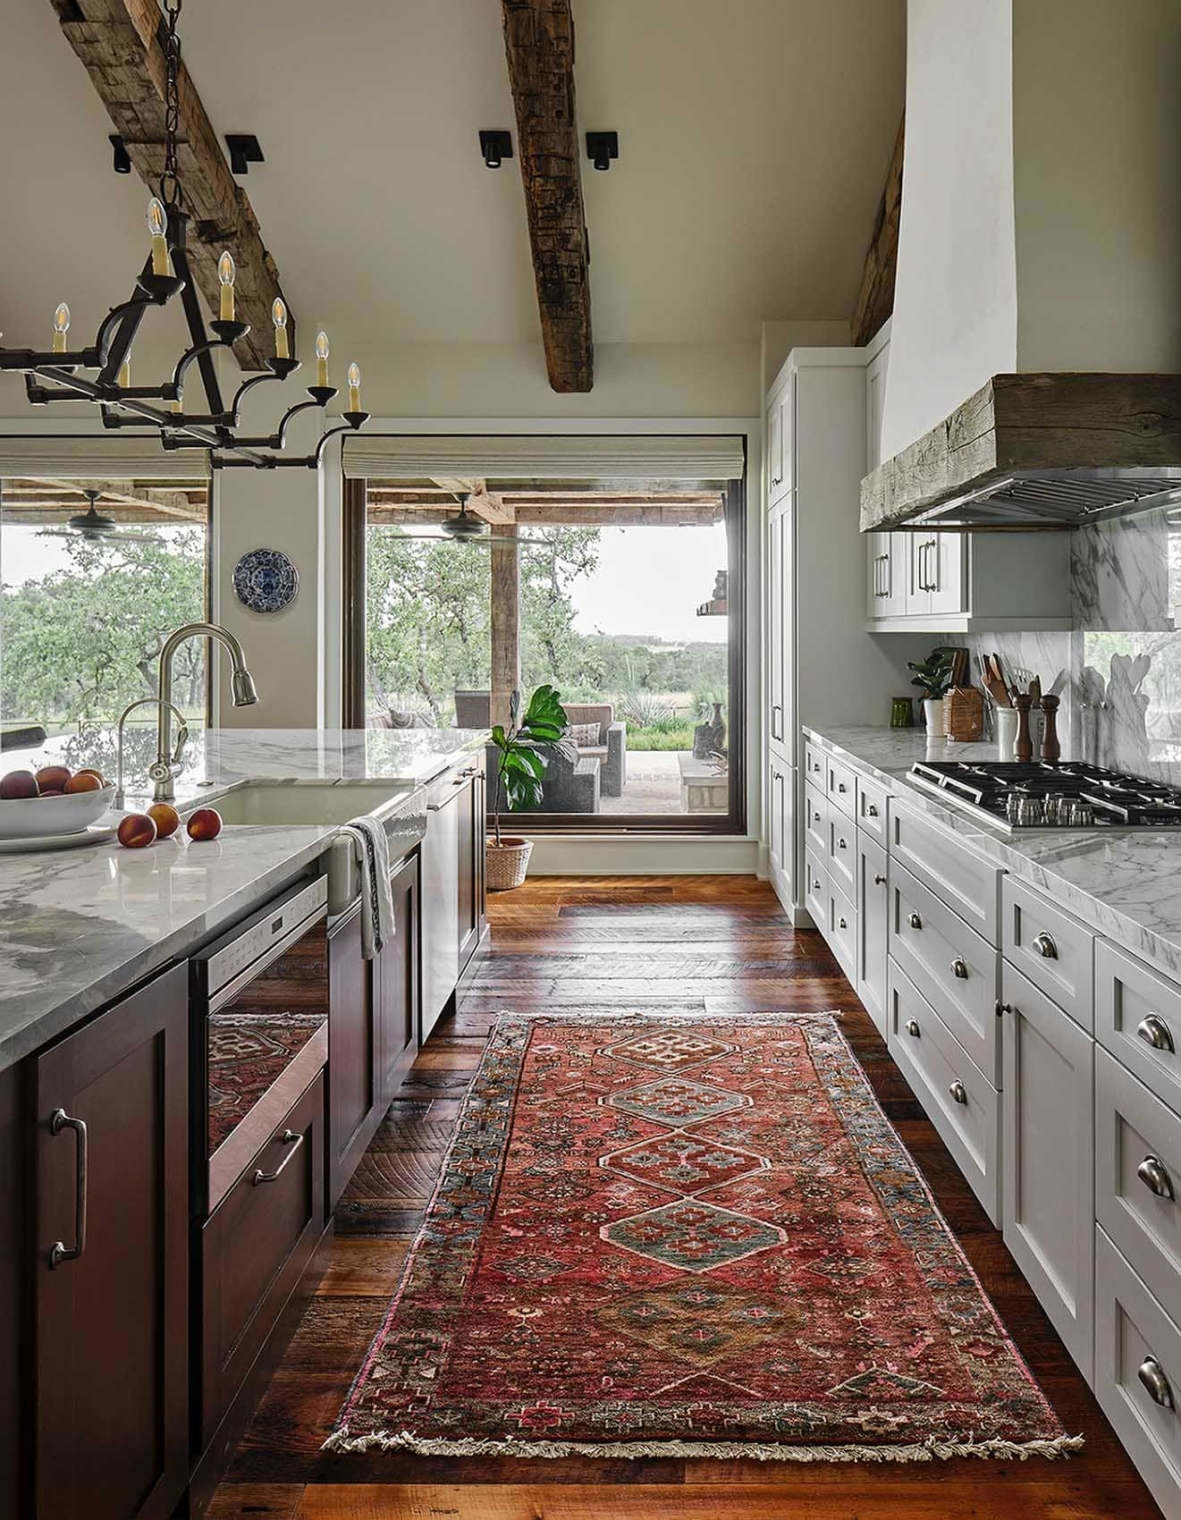 Hill Country Texas ranch home with walls painted in Benjamin Moore Wind's Breath, Paper Moon Painting, San Antonio, kitchen aisle